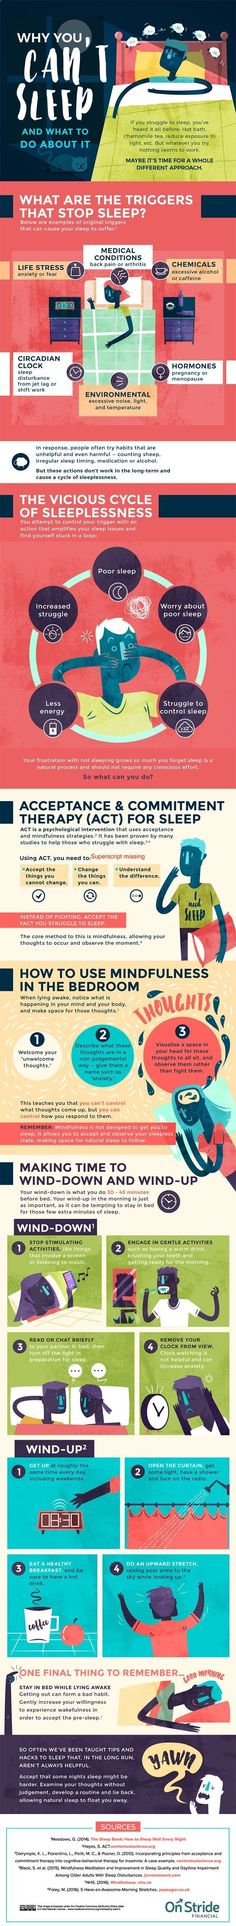 Insomnia Tips - Why You Cant Sleep and What to Do About It #insomniascience #InsomniaNight